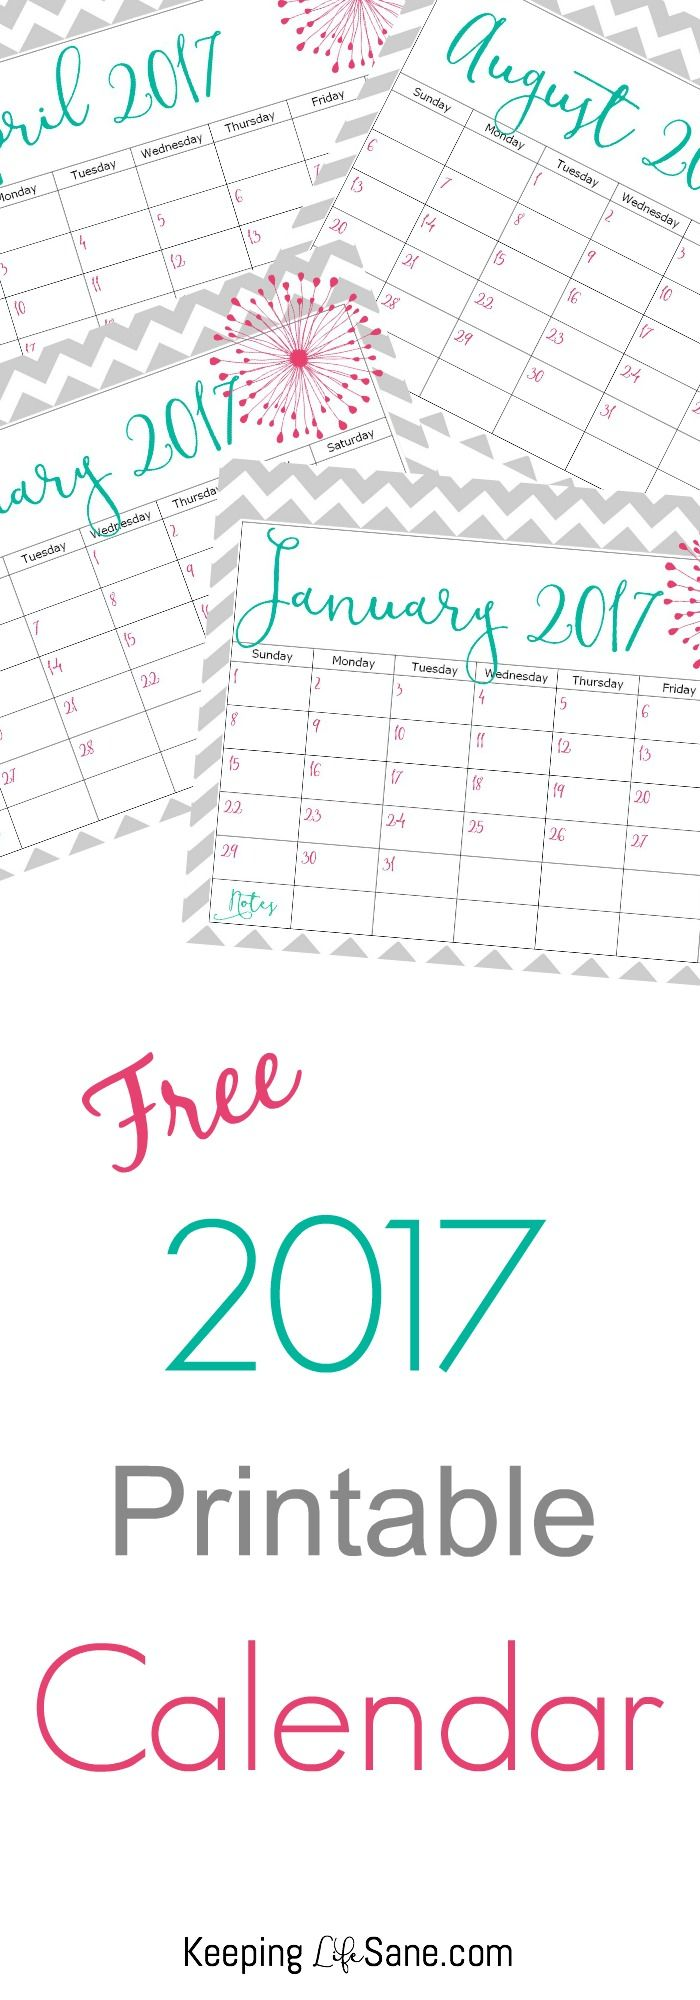 FREE 2017 Calendar for you to print - All months available!  So cute!!!